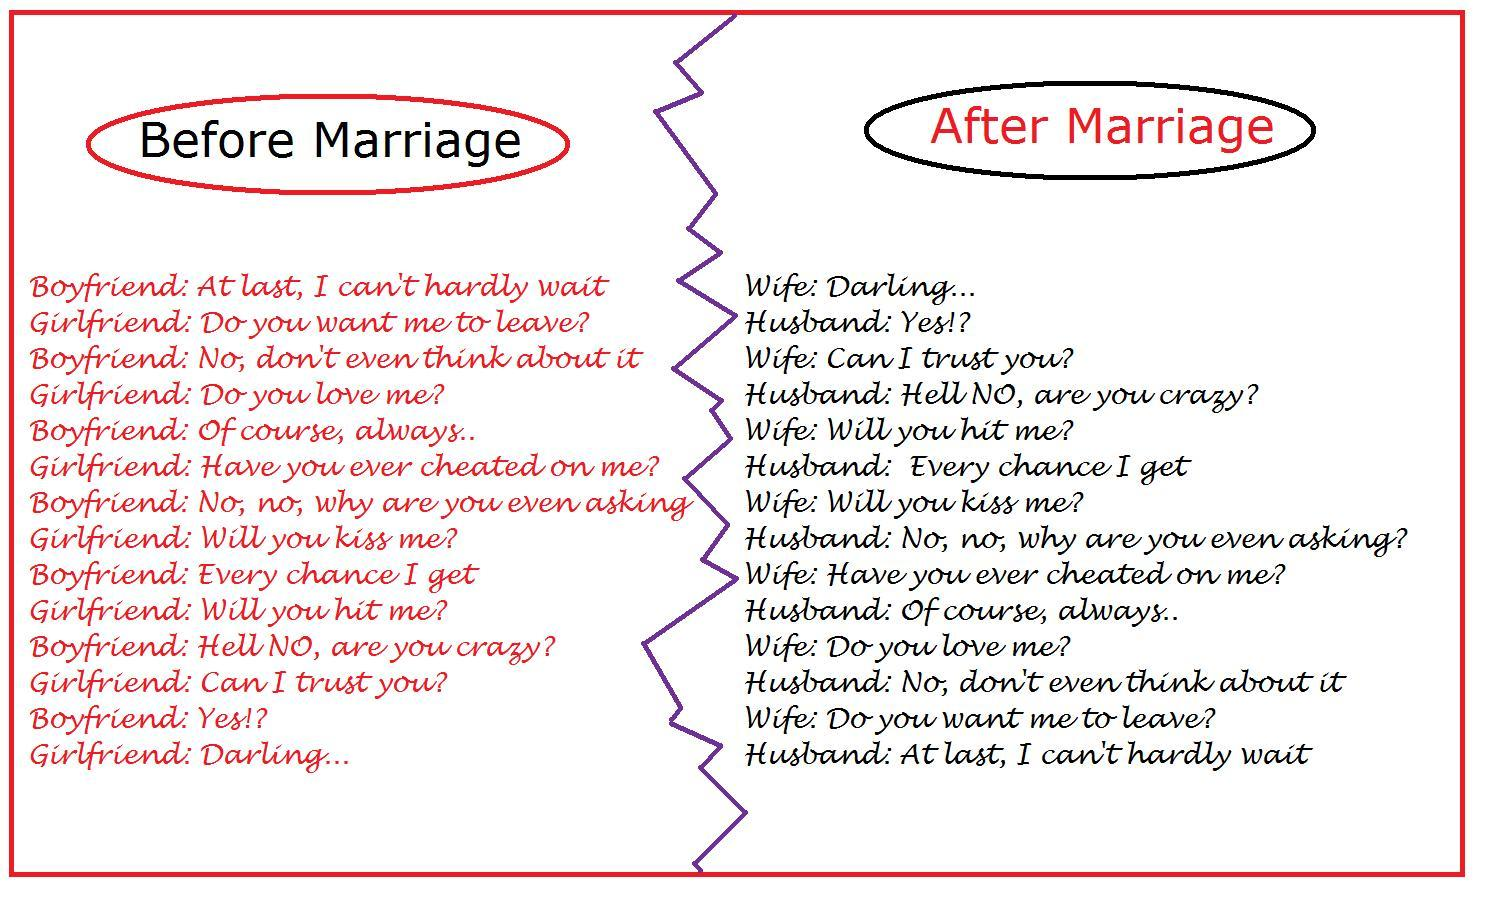 essay about love and marriage If love and marriage go together like a horse and carriage, then what do money and marriage go together as a horse and the automobile, a cat and dog, or maybe they can coexist peacefully.